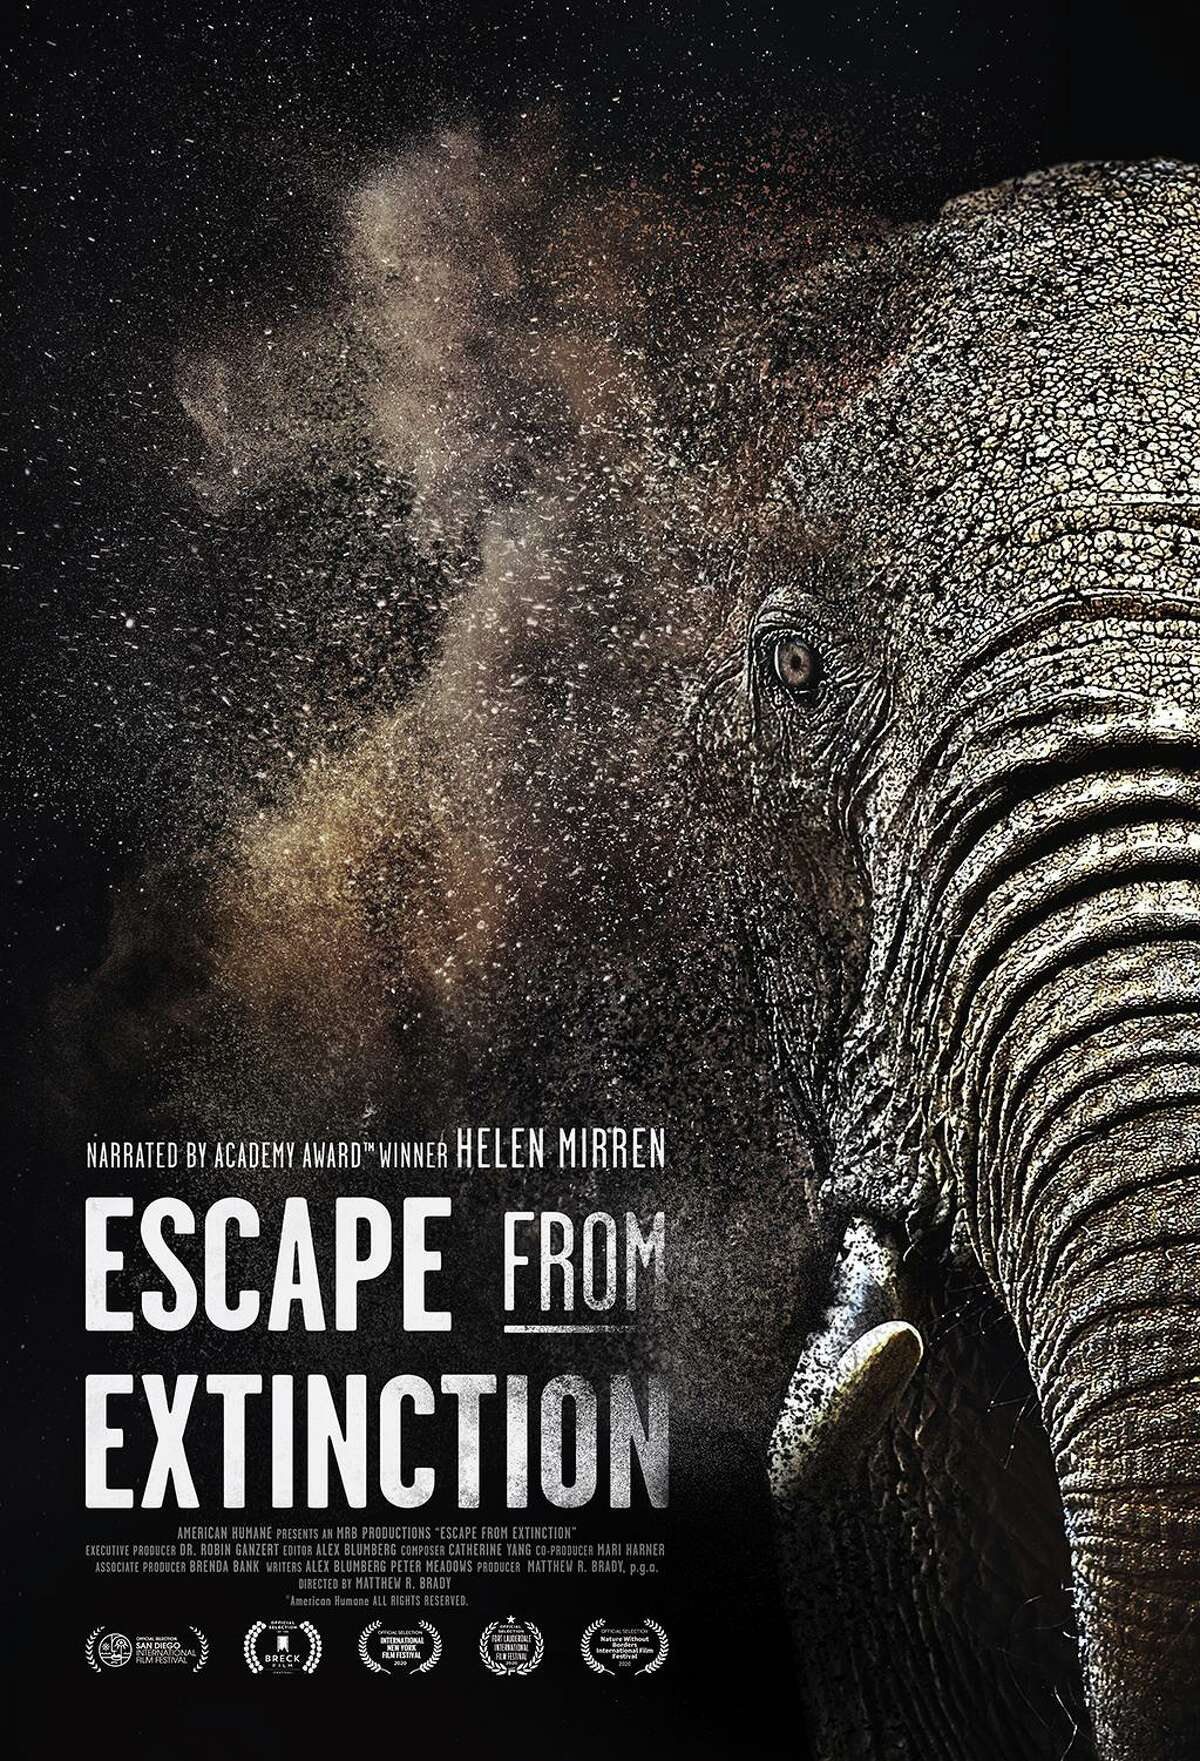 Matthew R. Brady, of Madison, has directed and produced the documentary 'Escape From Extinction,' narrated by Dame Helen Mirren. The movie will be opening in Mystic at the Cinepolis and Mystic Luxury Cinemas on Oct. 16.